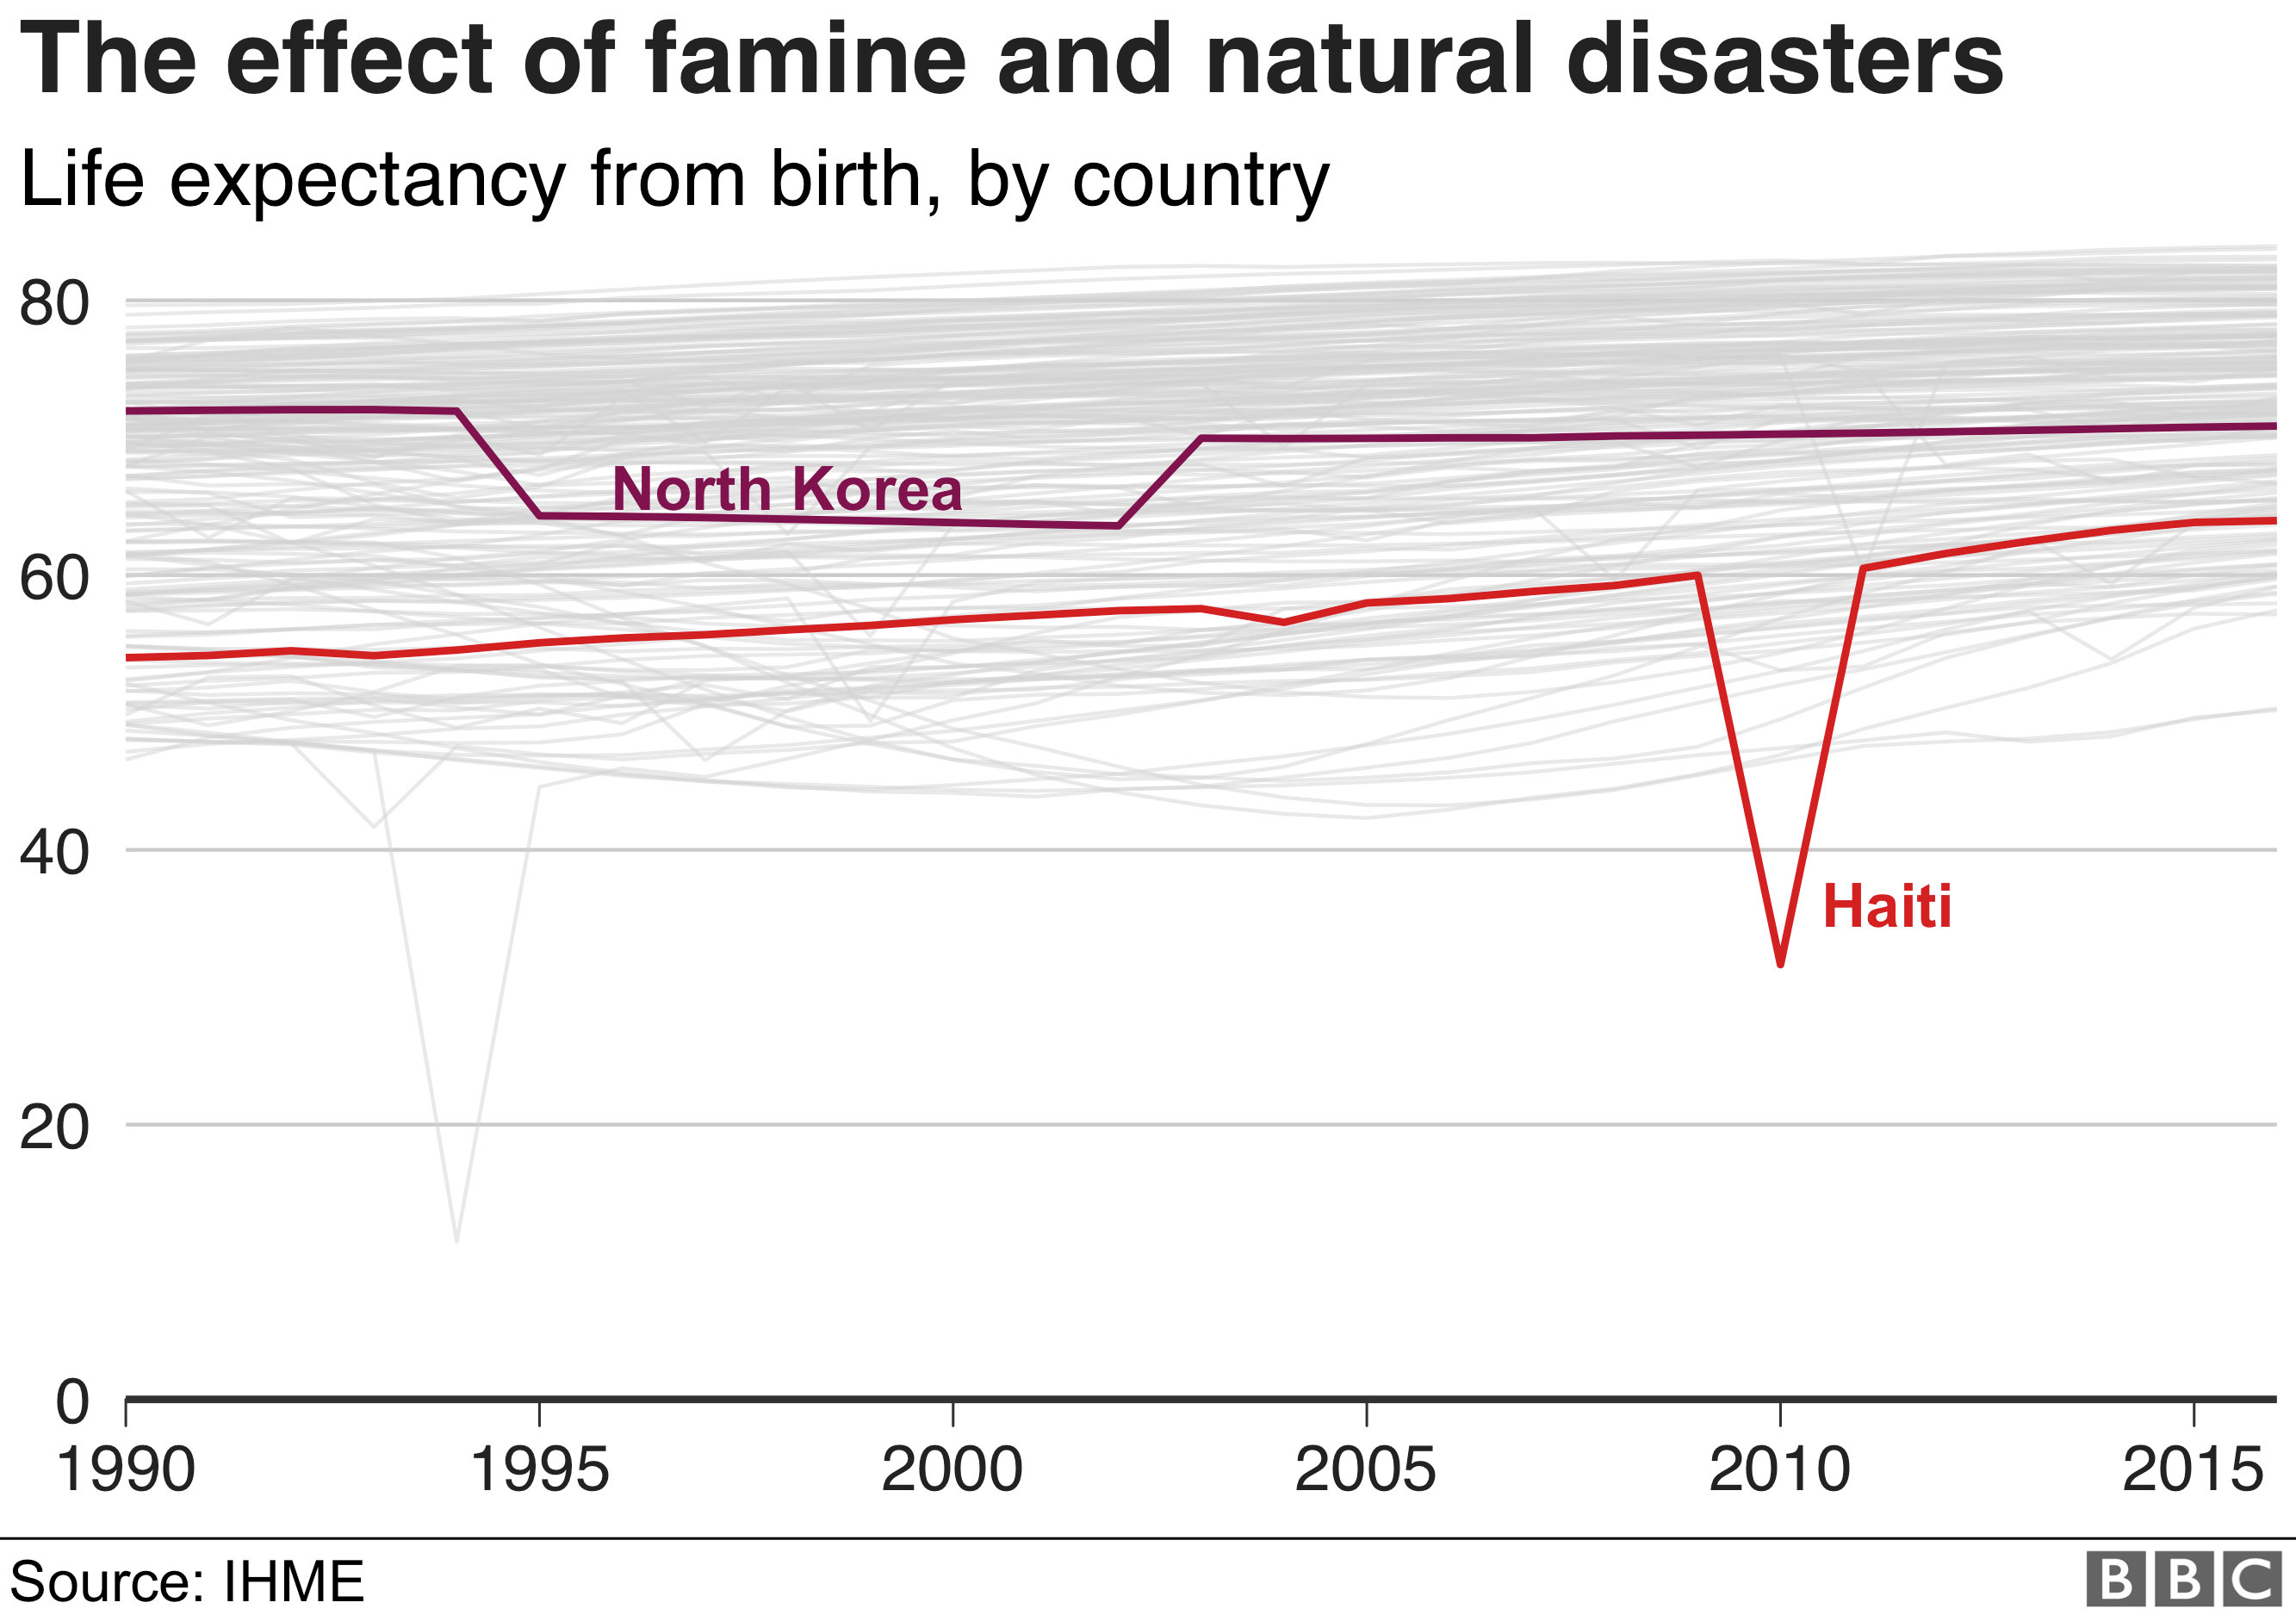 Famine in North Korea and a huge earthquake in Haiti has had a huge negative impact on life expectancy